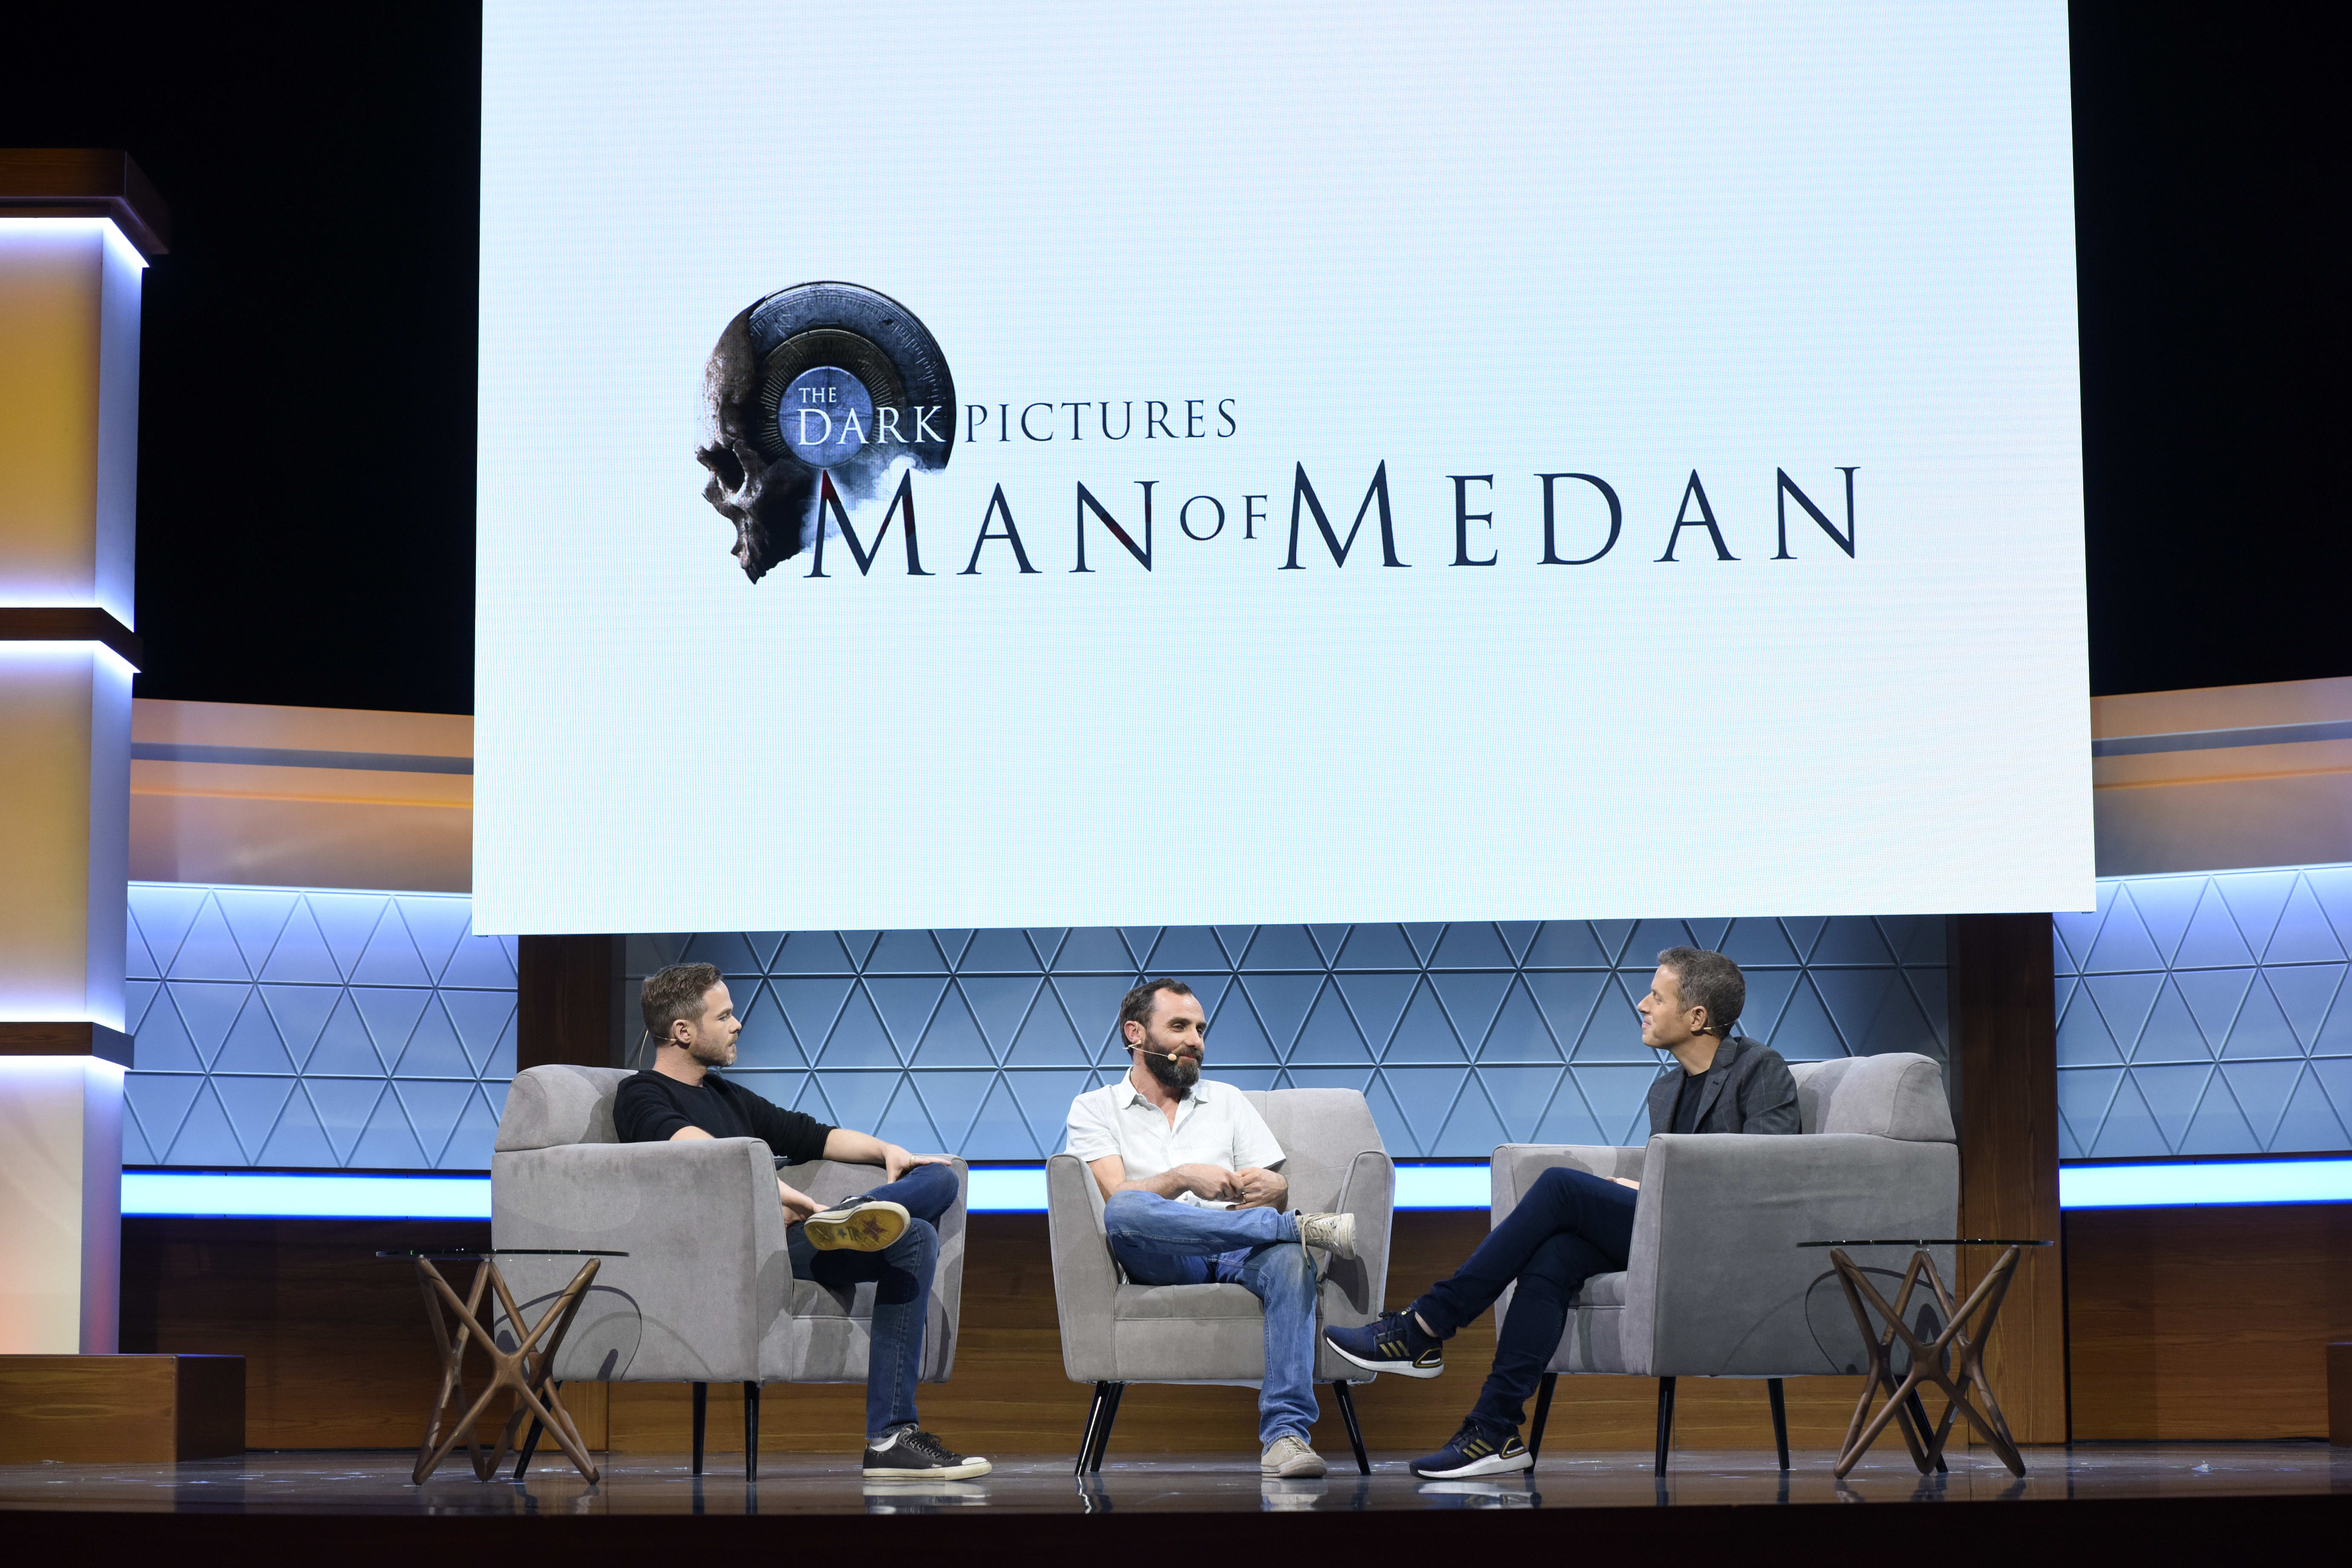 'The Dark Pictures: Man of Medan' discussion at E3